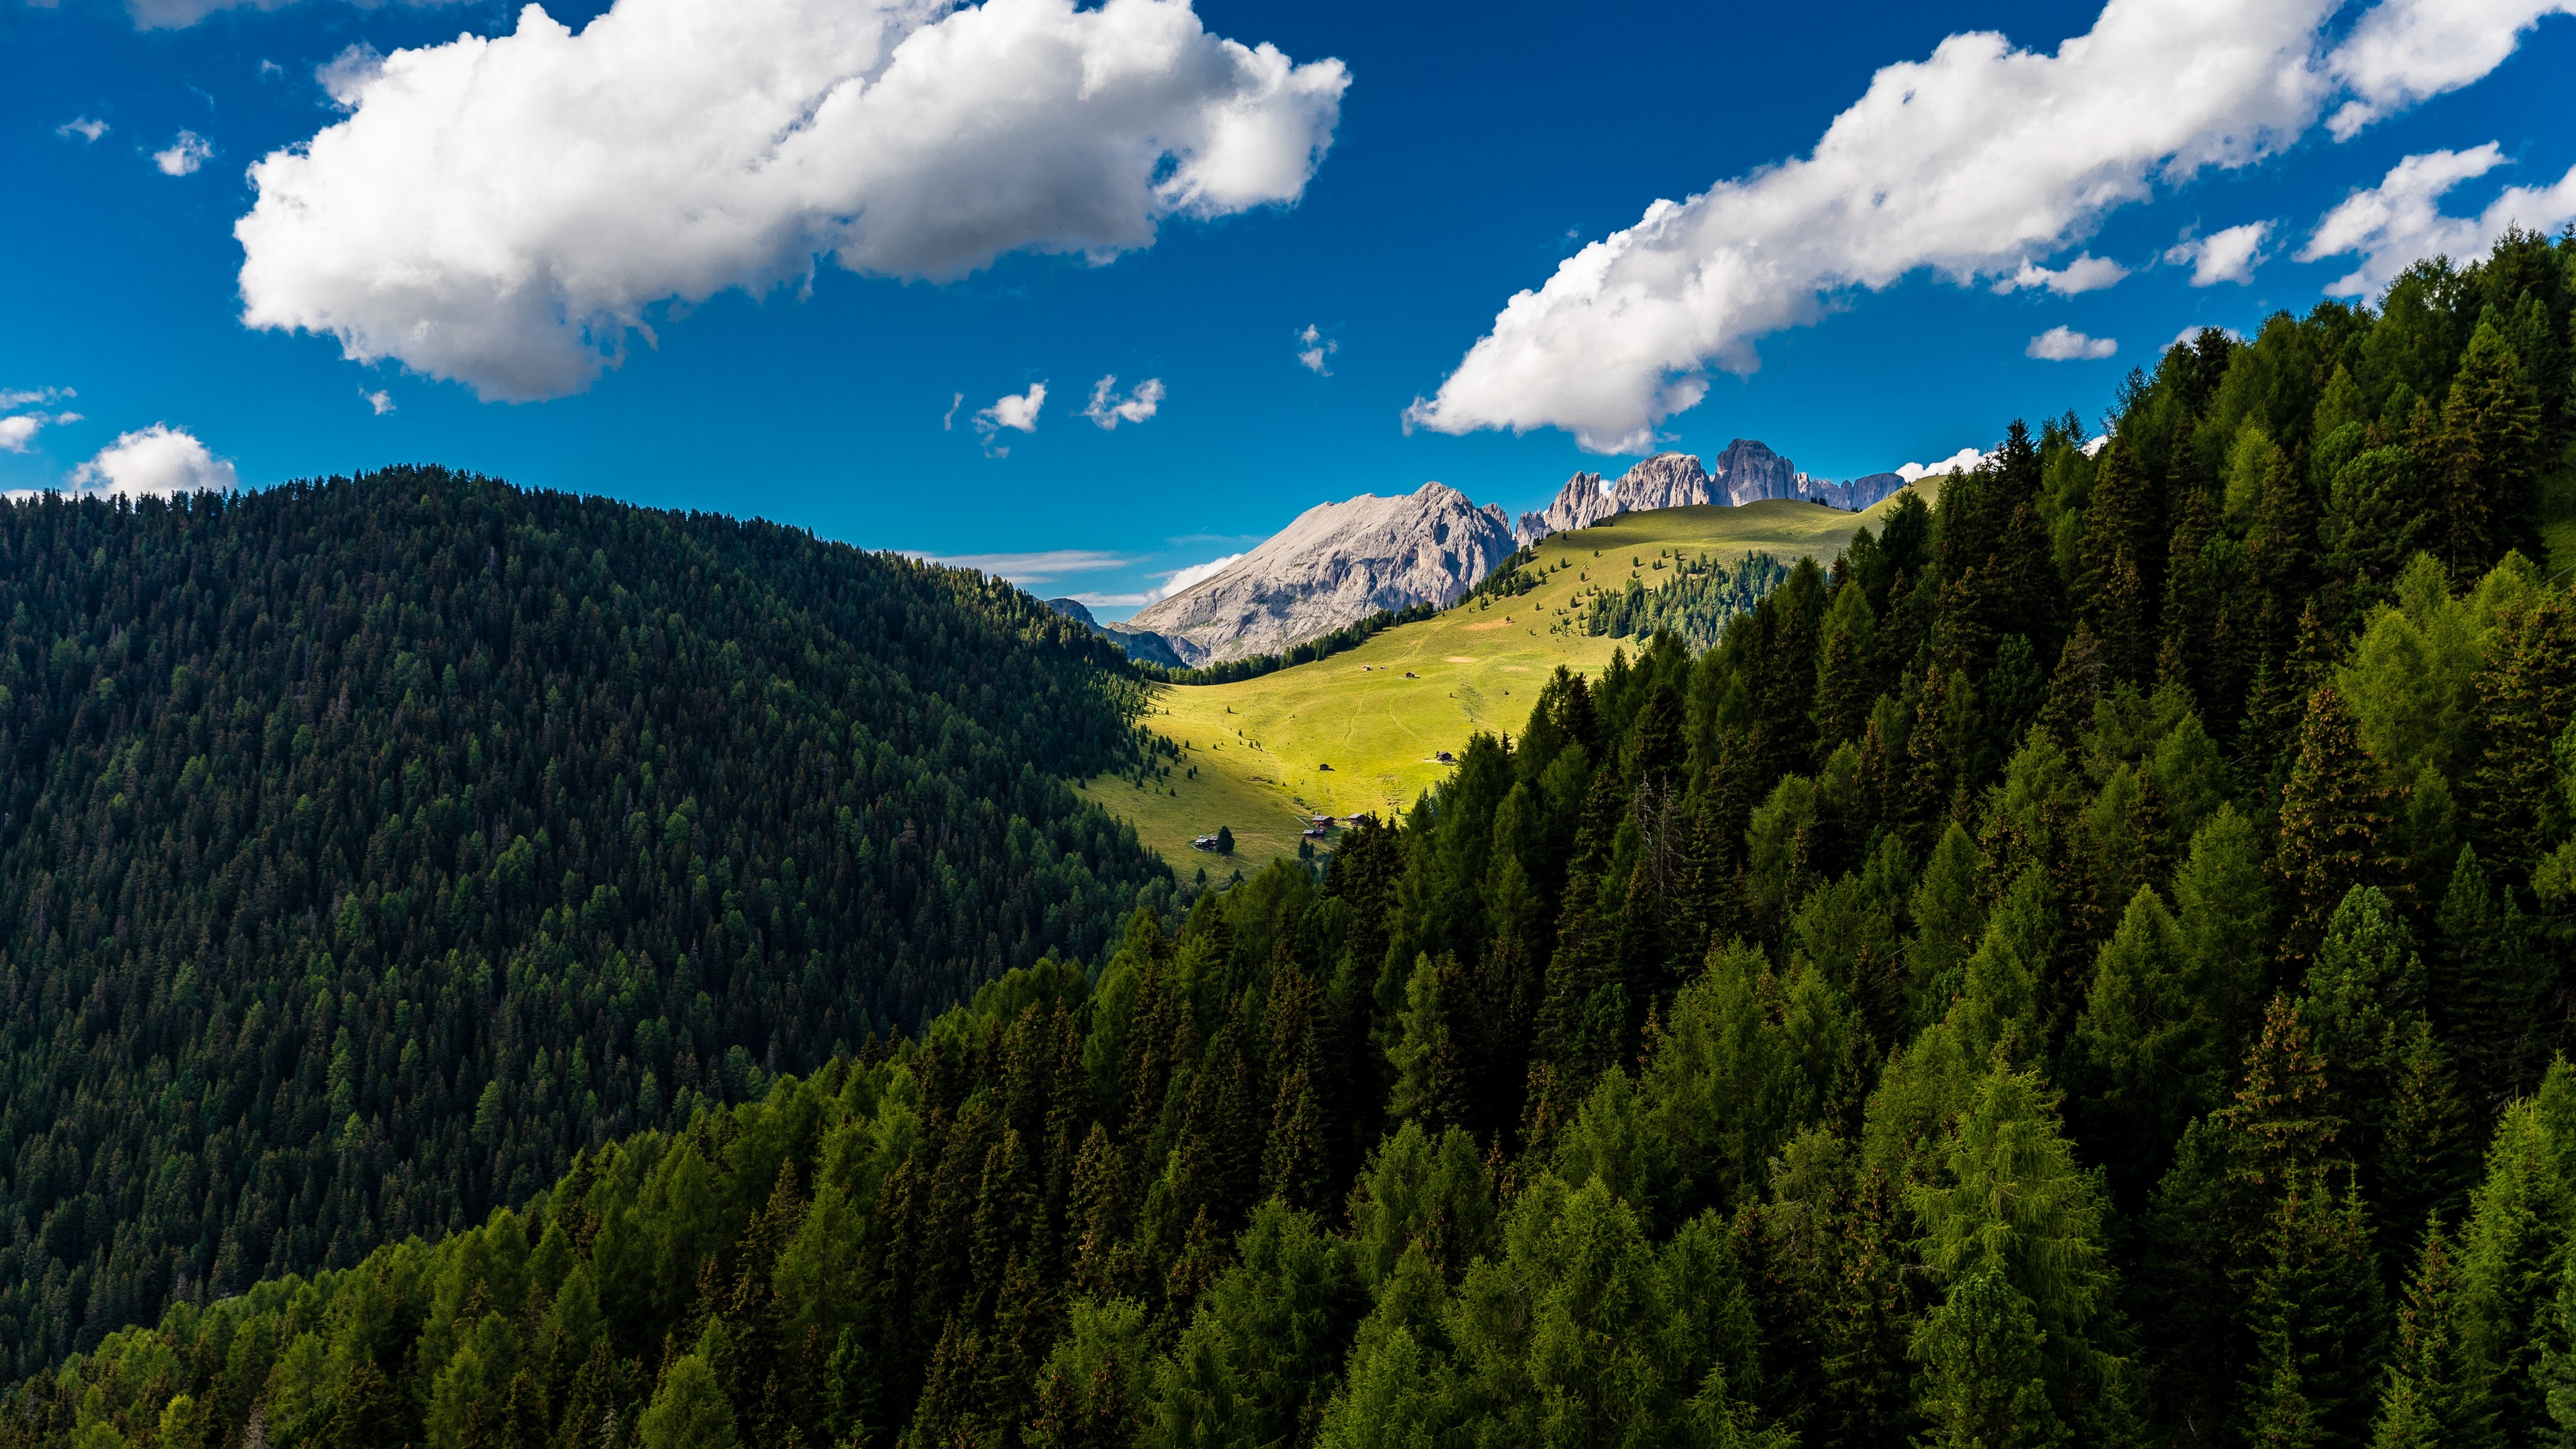 trees mountains clouds summer 4k 1541114085 - trees, mountains, clouds, summer 4k - Trees, Mountains, Clouds